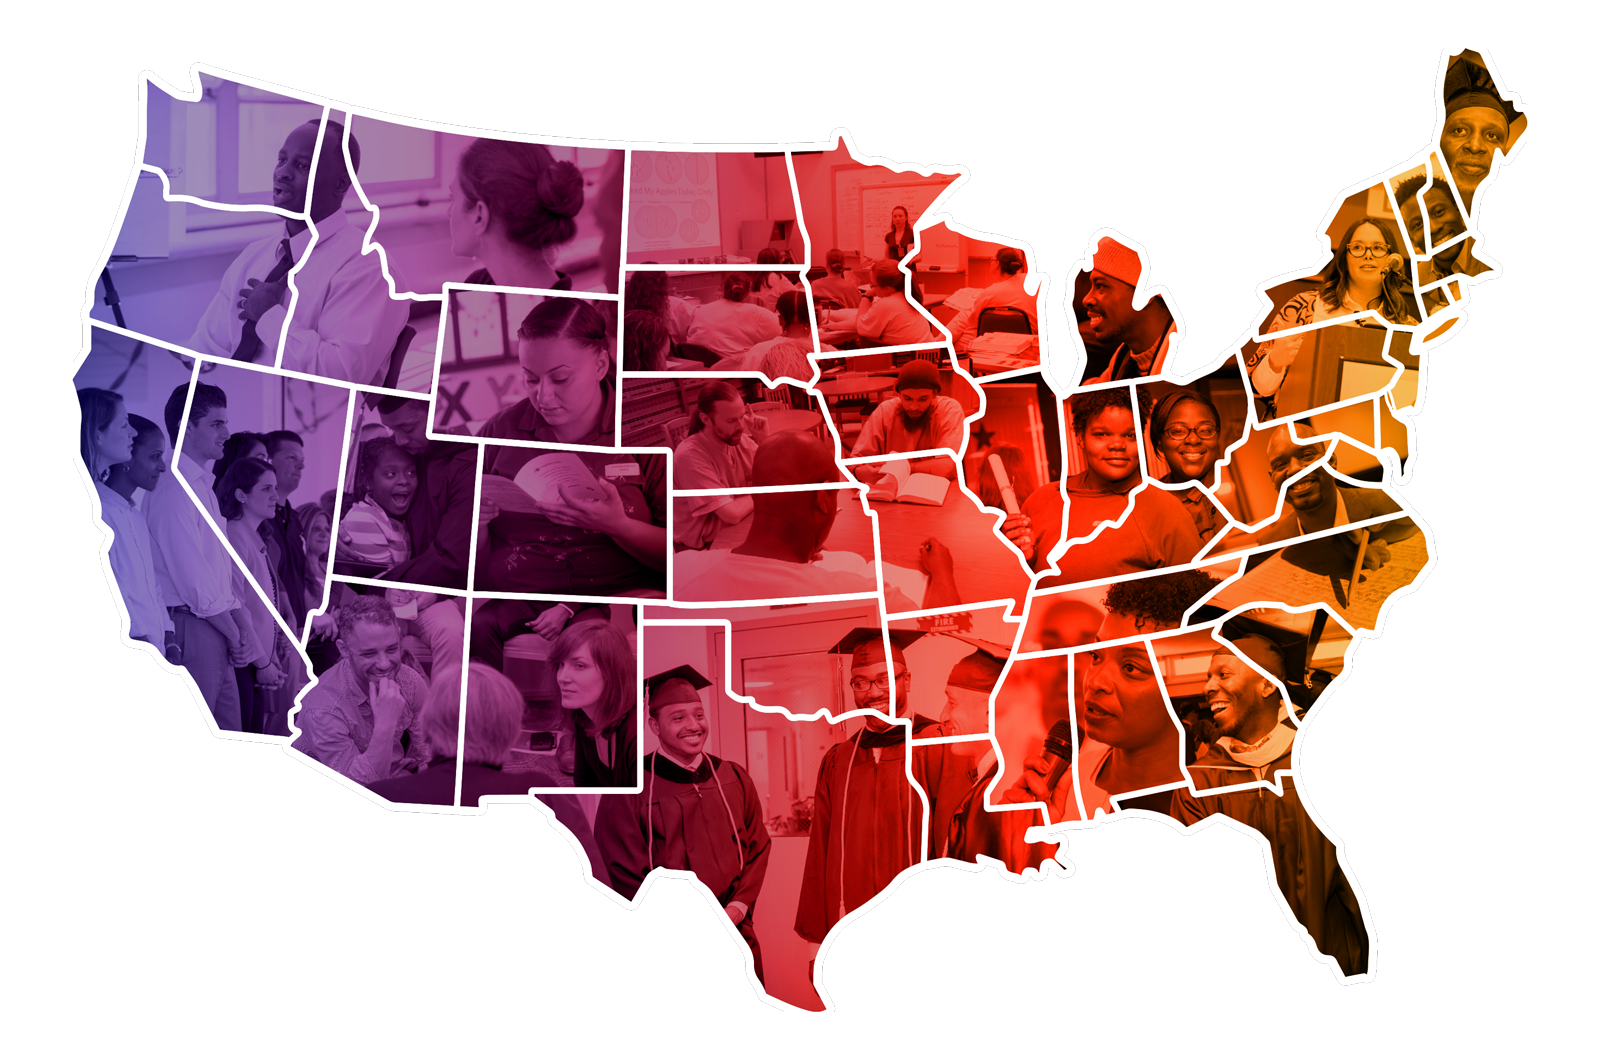 a colorful map of the continental United States depicts a mosaic of faces of the higher education in prison community